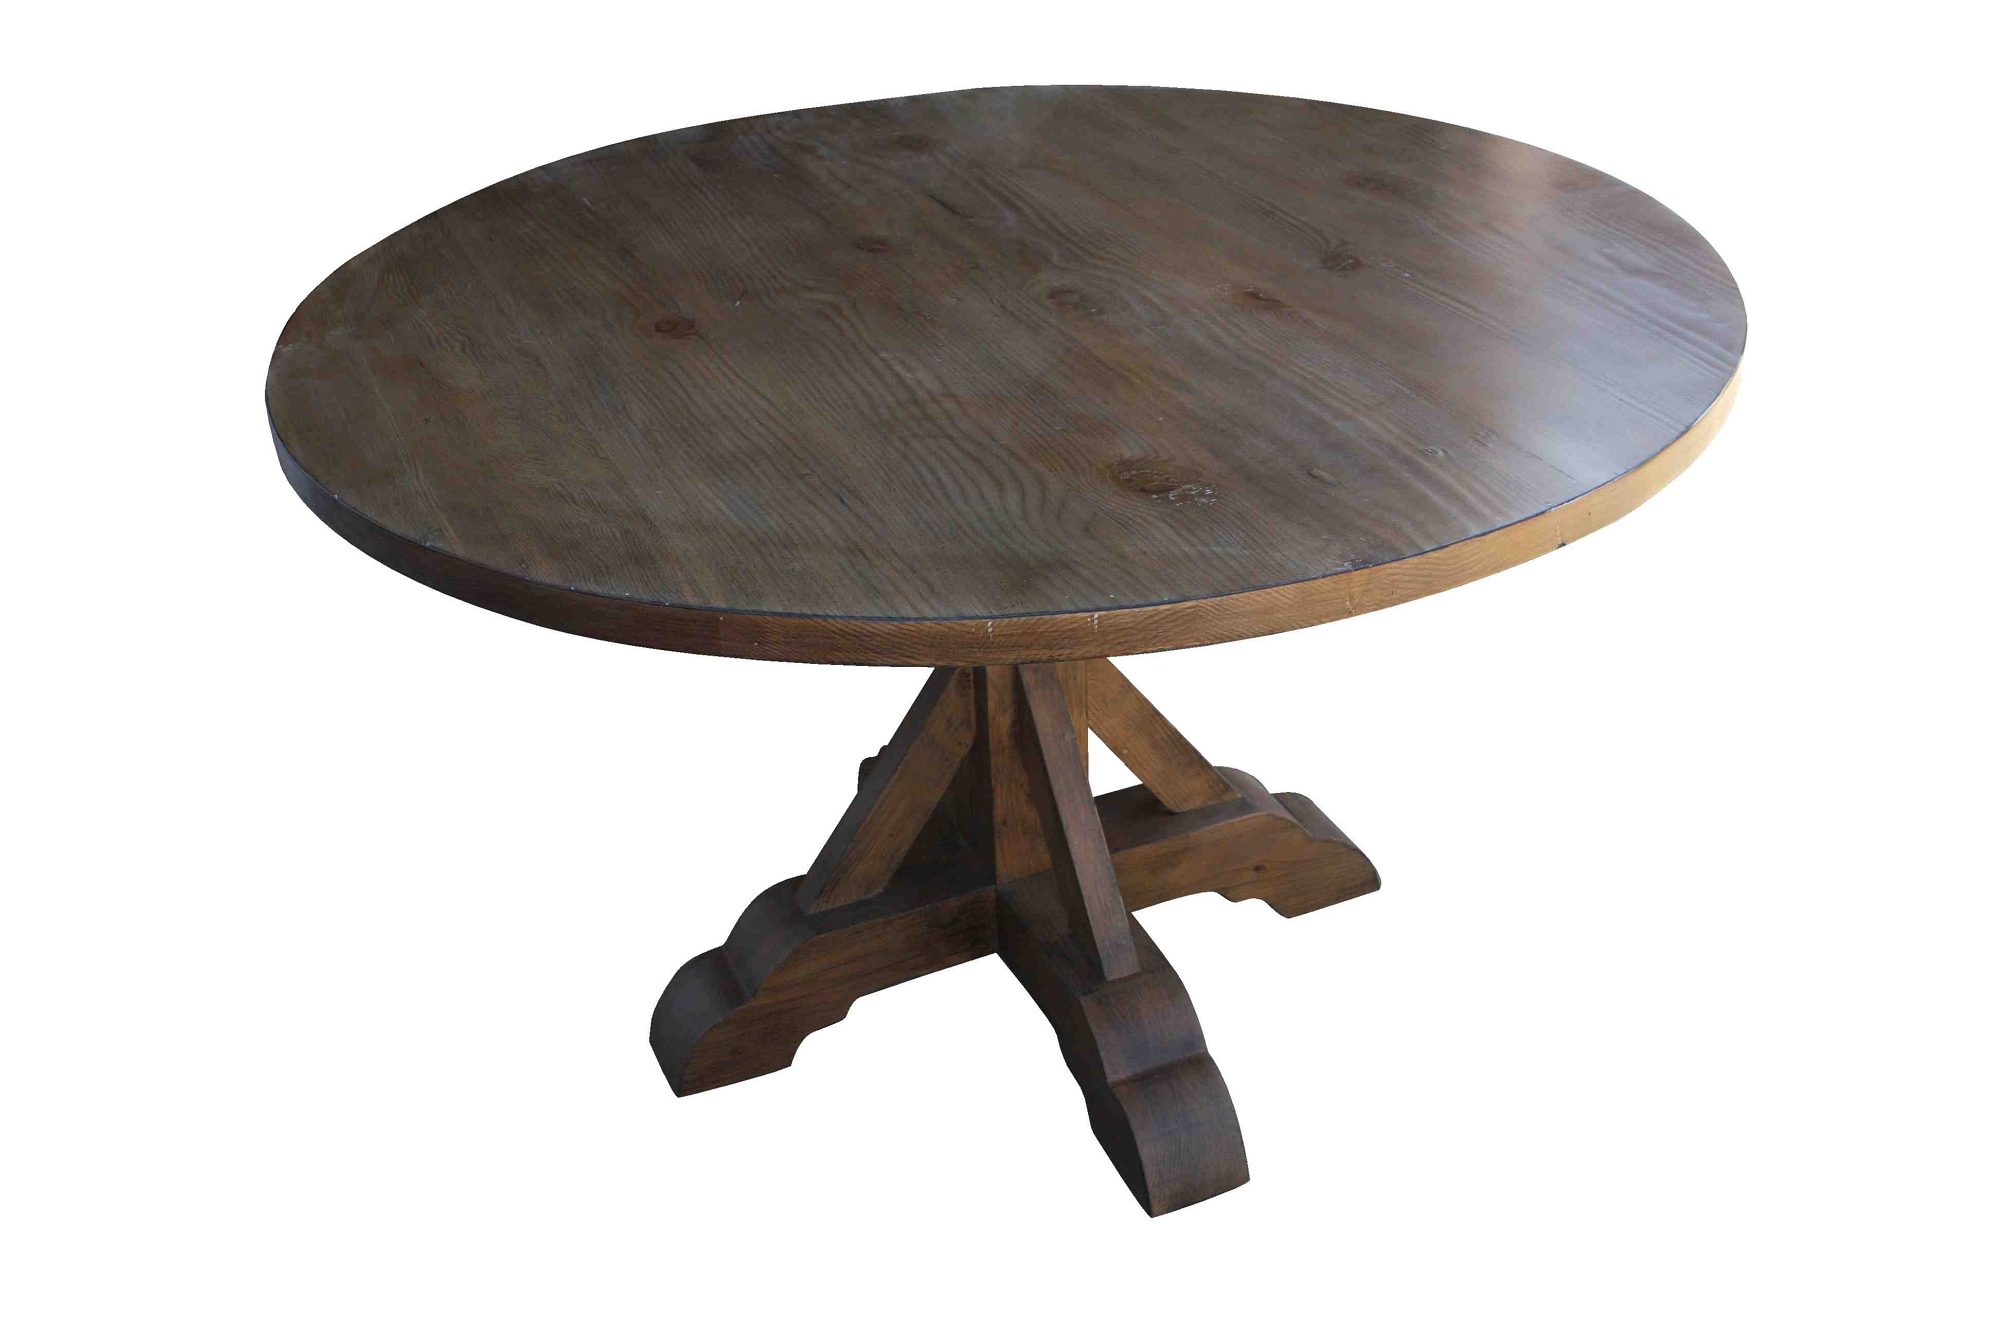 2000x1333px 7 Gorgeous Reclaimed Wood Round Dining Table Picture in Furniture